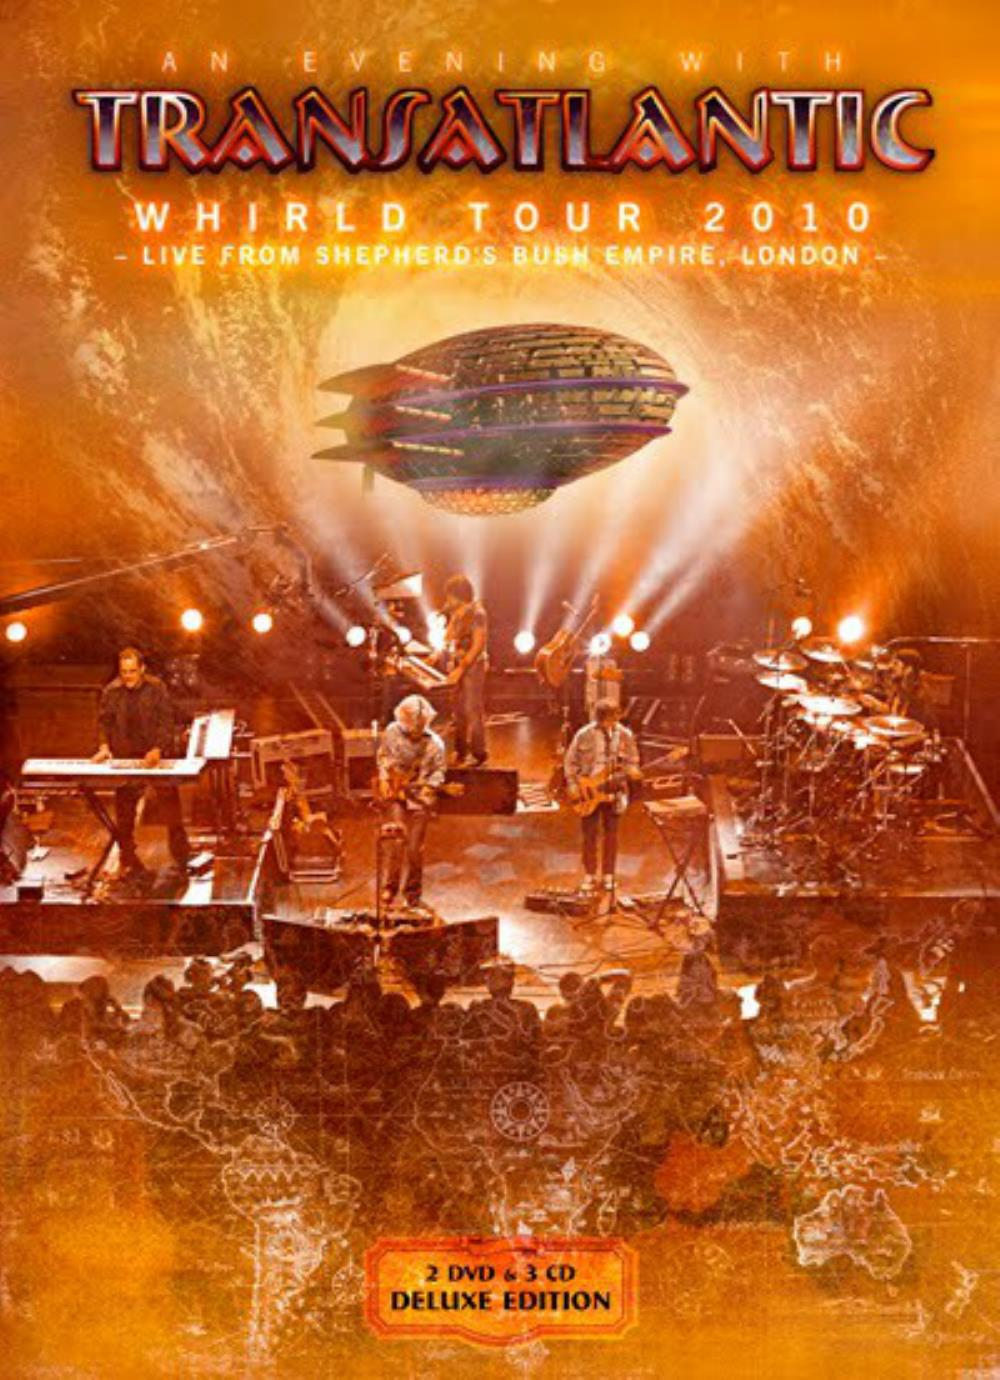 Resultado de imagen para Transatlantic Whirld Tour Live From Shepherd's Bush Empire, London DVd